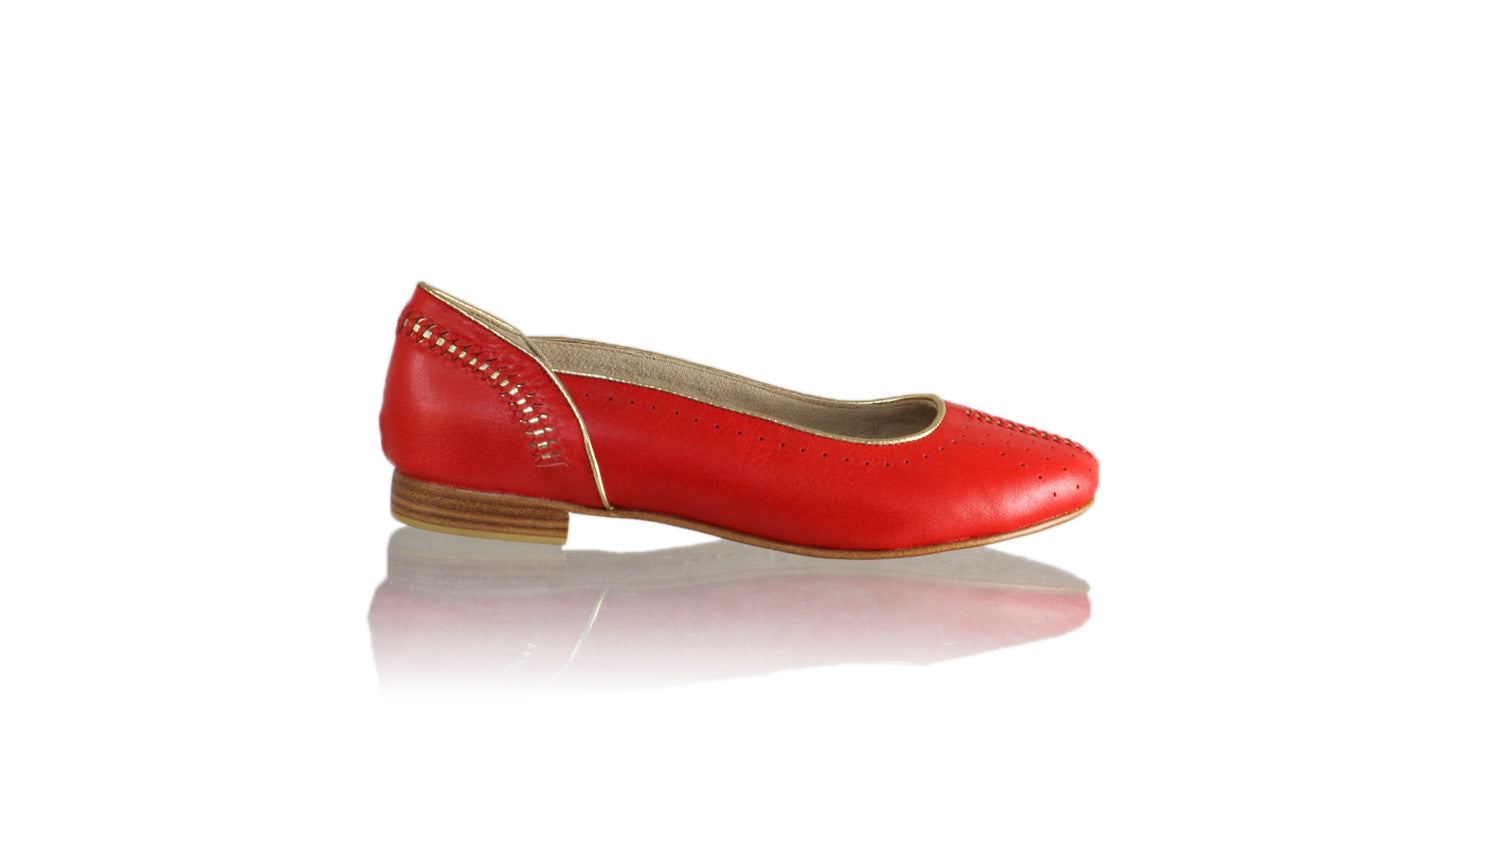 Leather-shoes-Donna 20mm Ballet - Red & Gold-sandals flat-NILUH DJELANTIK-NILUH DJELANTIK